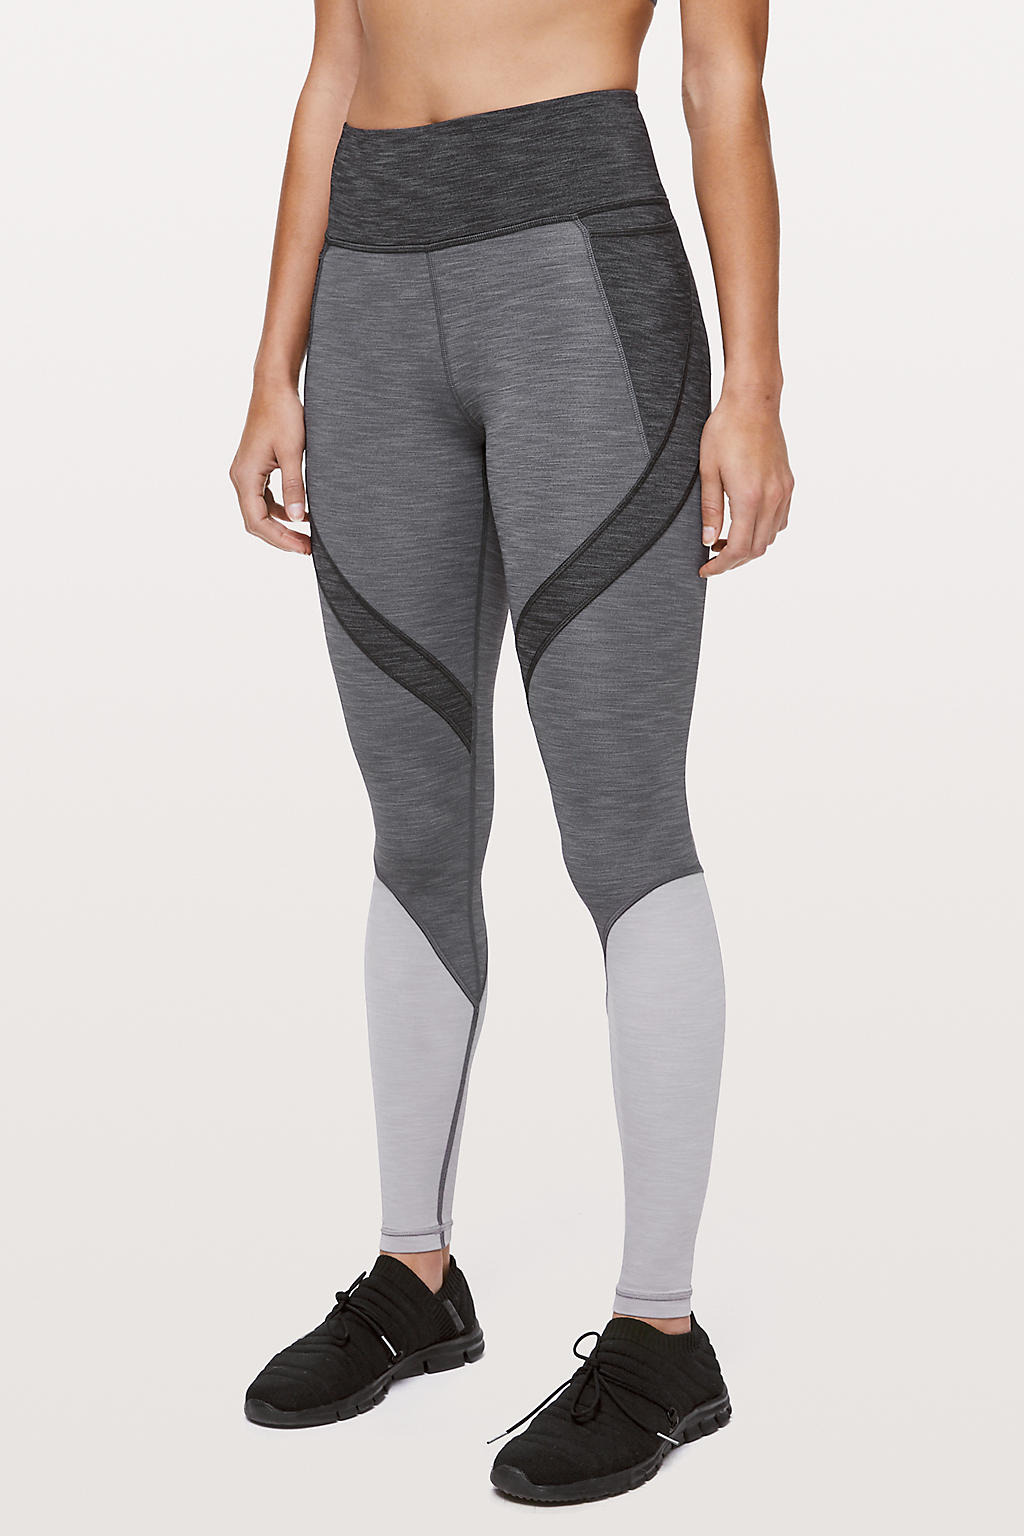 """Lululemon Early Extension High-Rise Tight  28"""""""